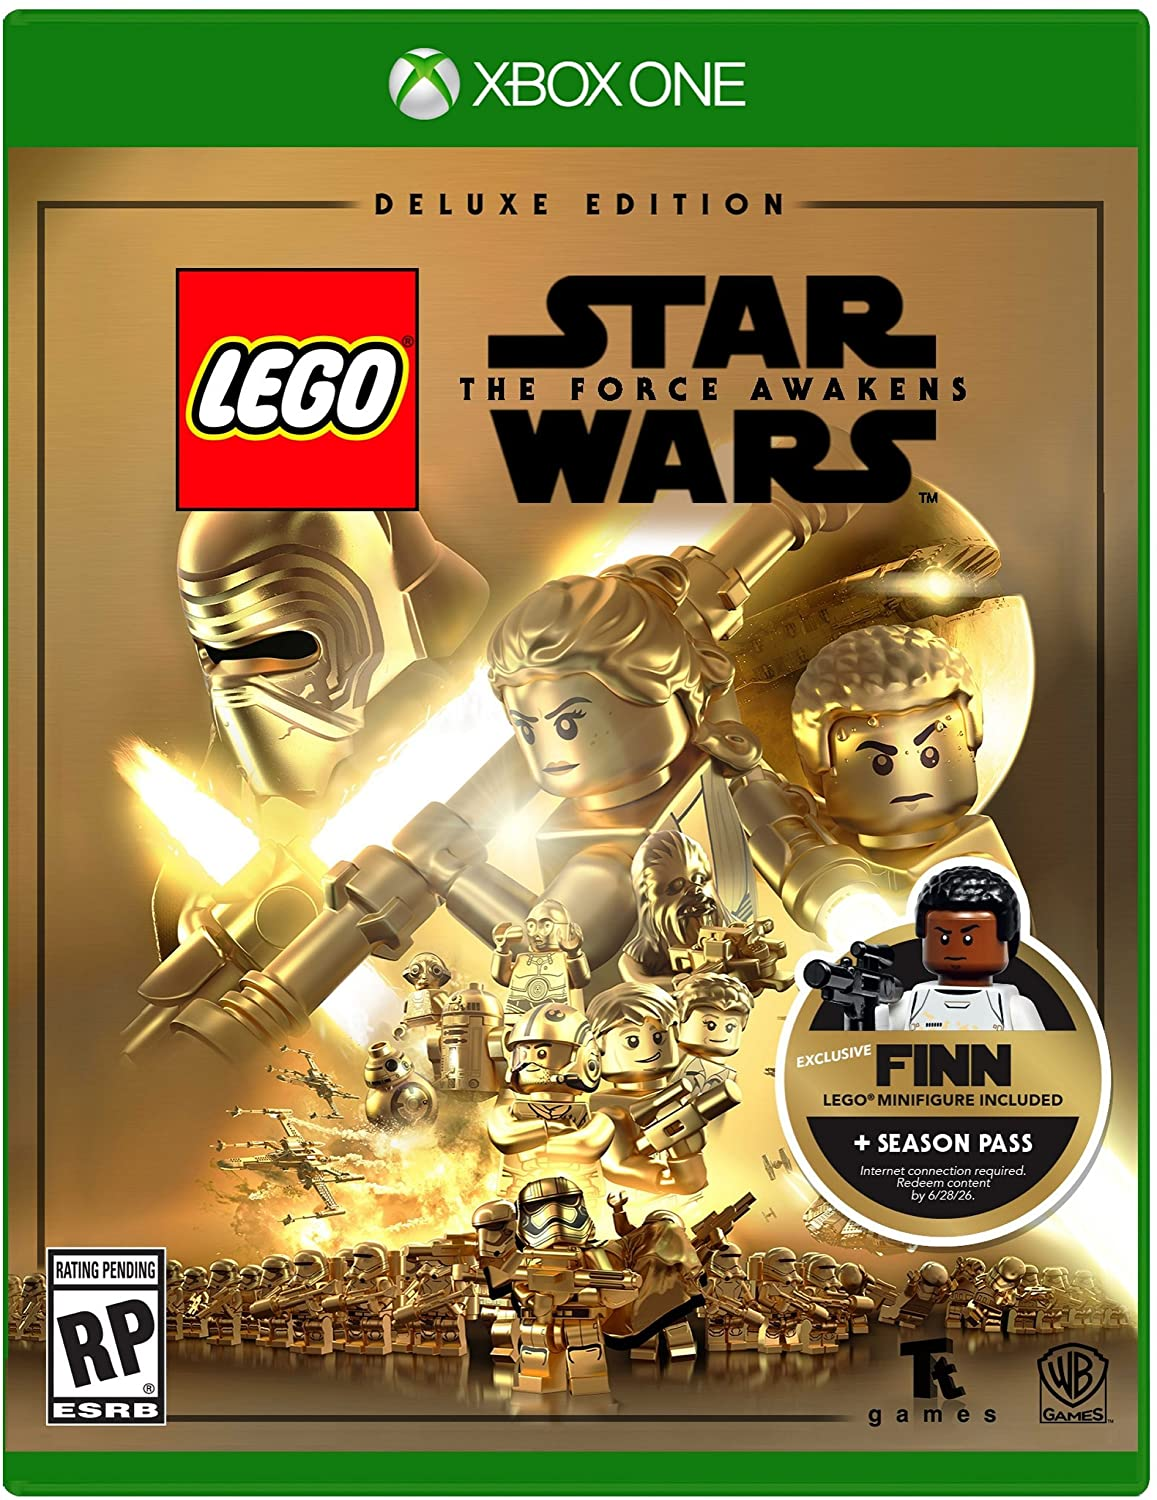 WB Games Xbox One LEGO Star Wars: The Force Awakens - Deluxe Edition